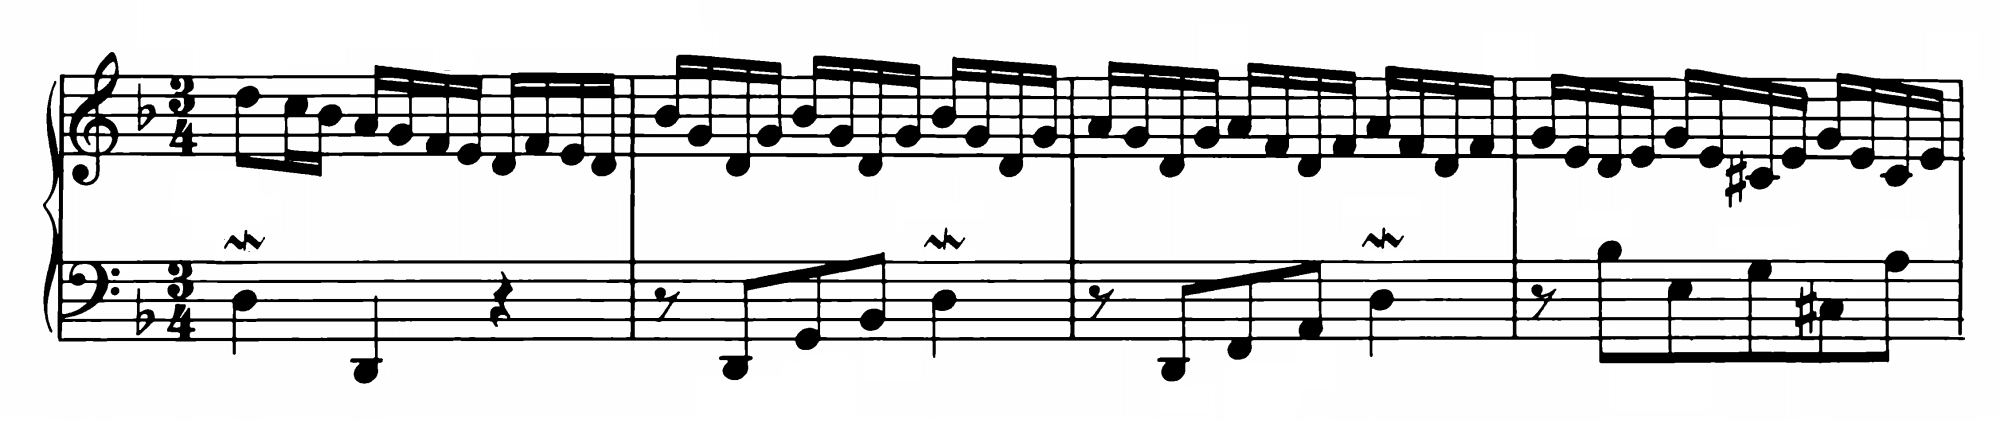 Bach: Prelude and Fugue No.6 in D minor, BWV 875 Analysis